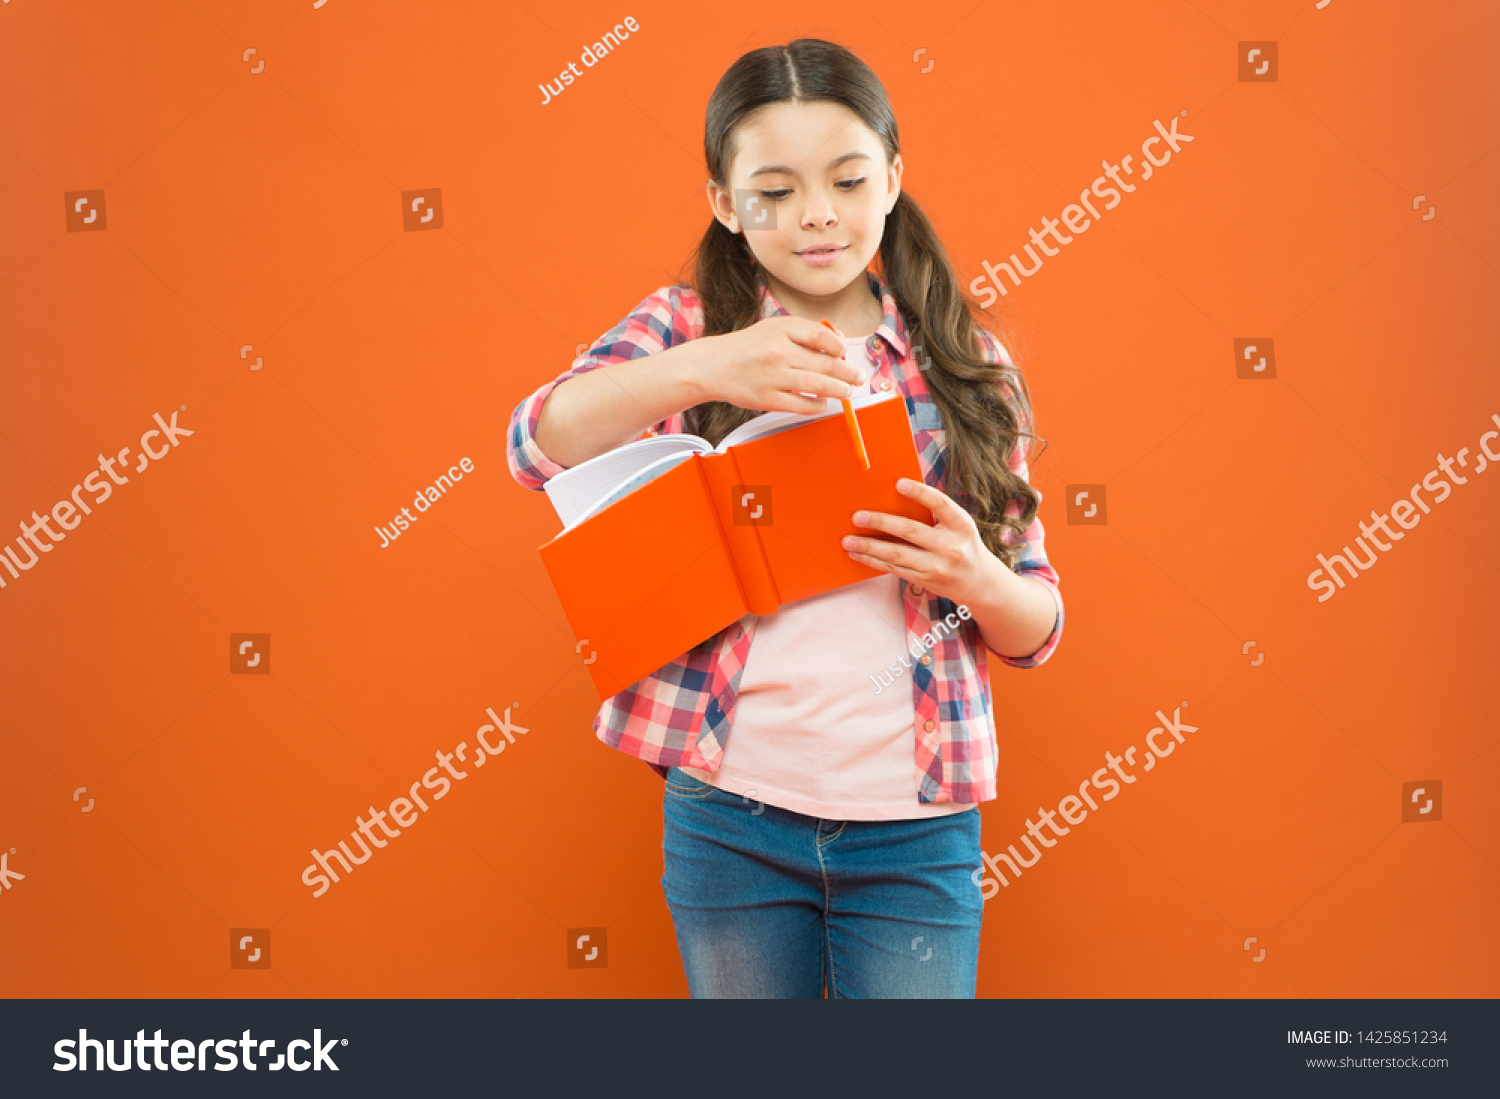 Entering a different world. Literature education. Little girl with book of english literature. Small child reading childrens literature on orange background. Literature lesson at school. #1425851234